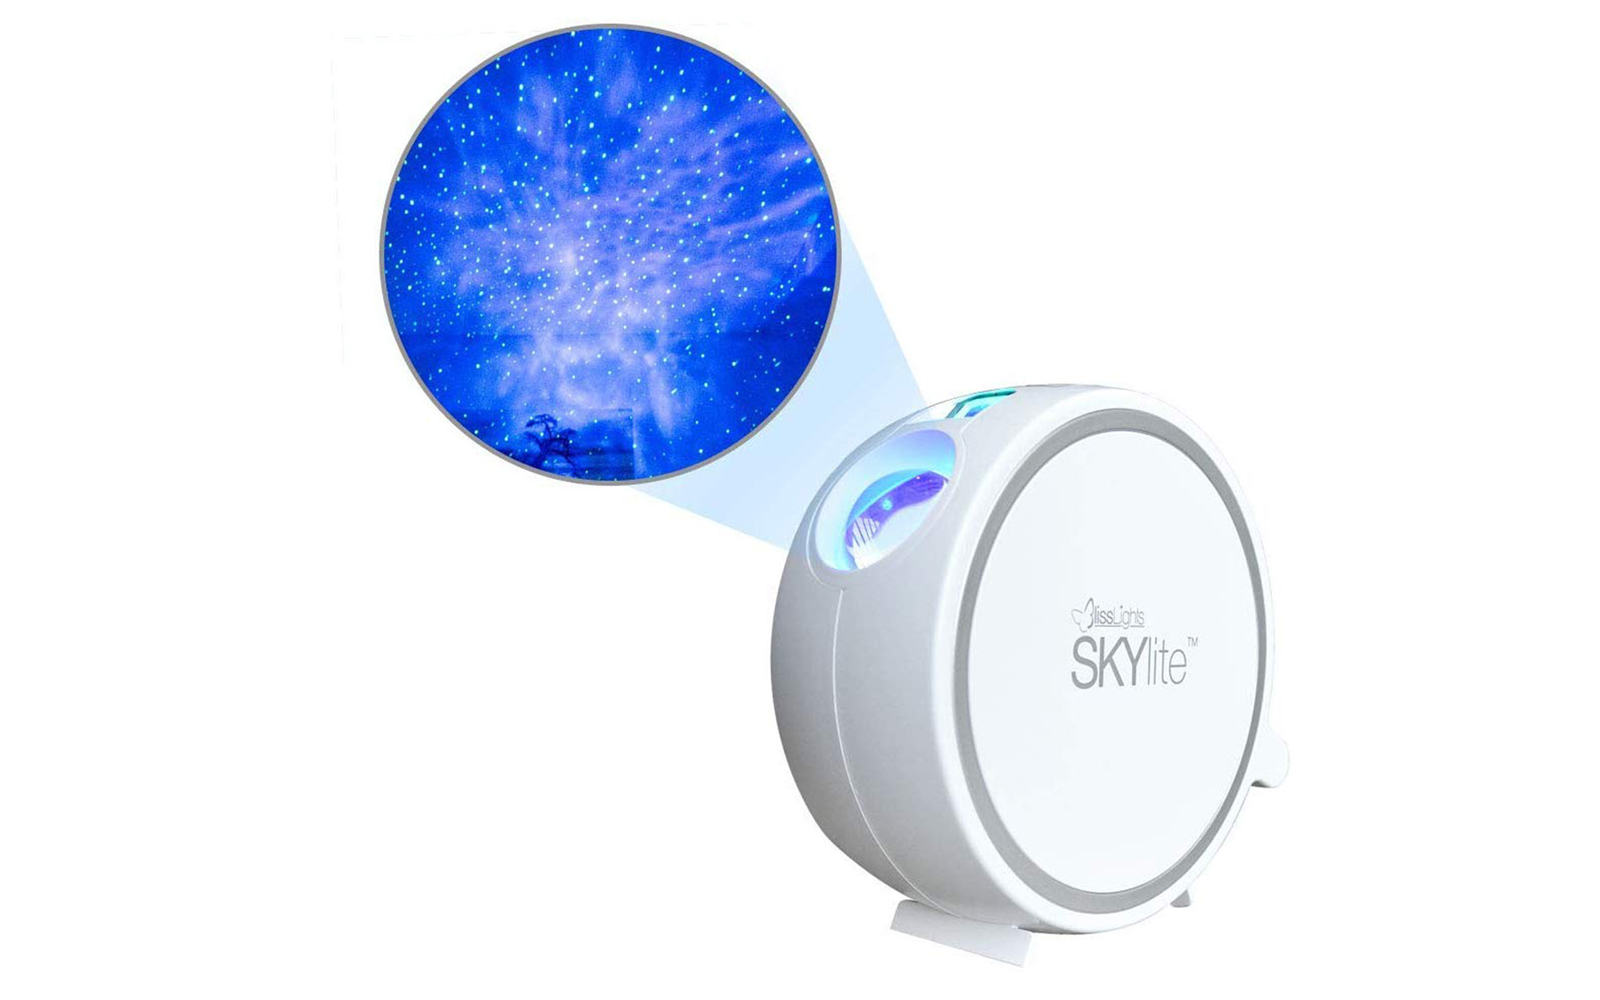 Amazon's best-selling night light lets you project the night sky onto your walls